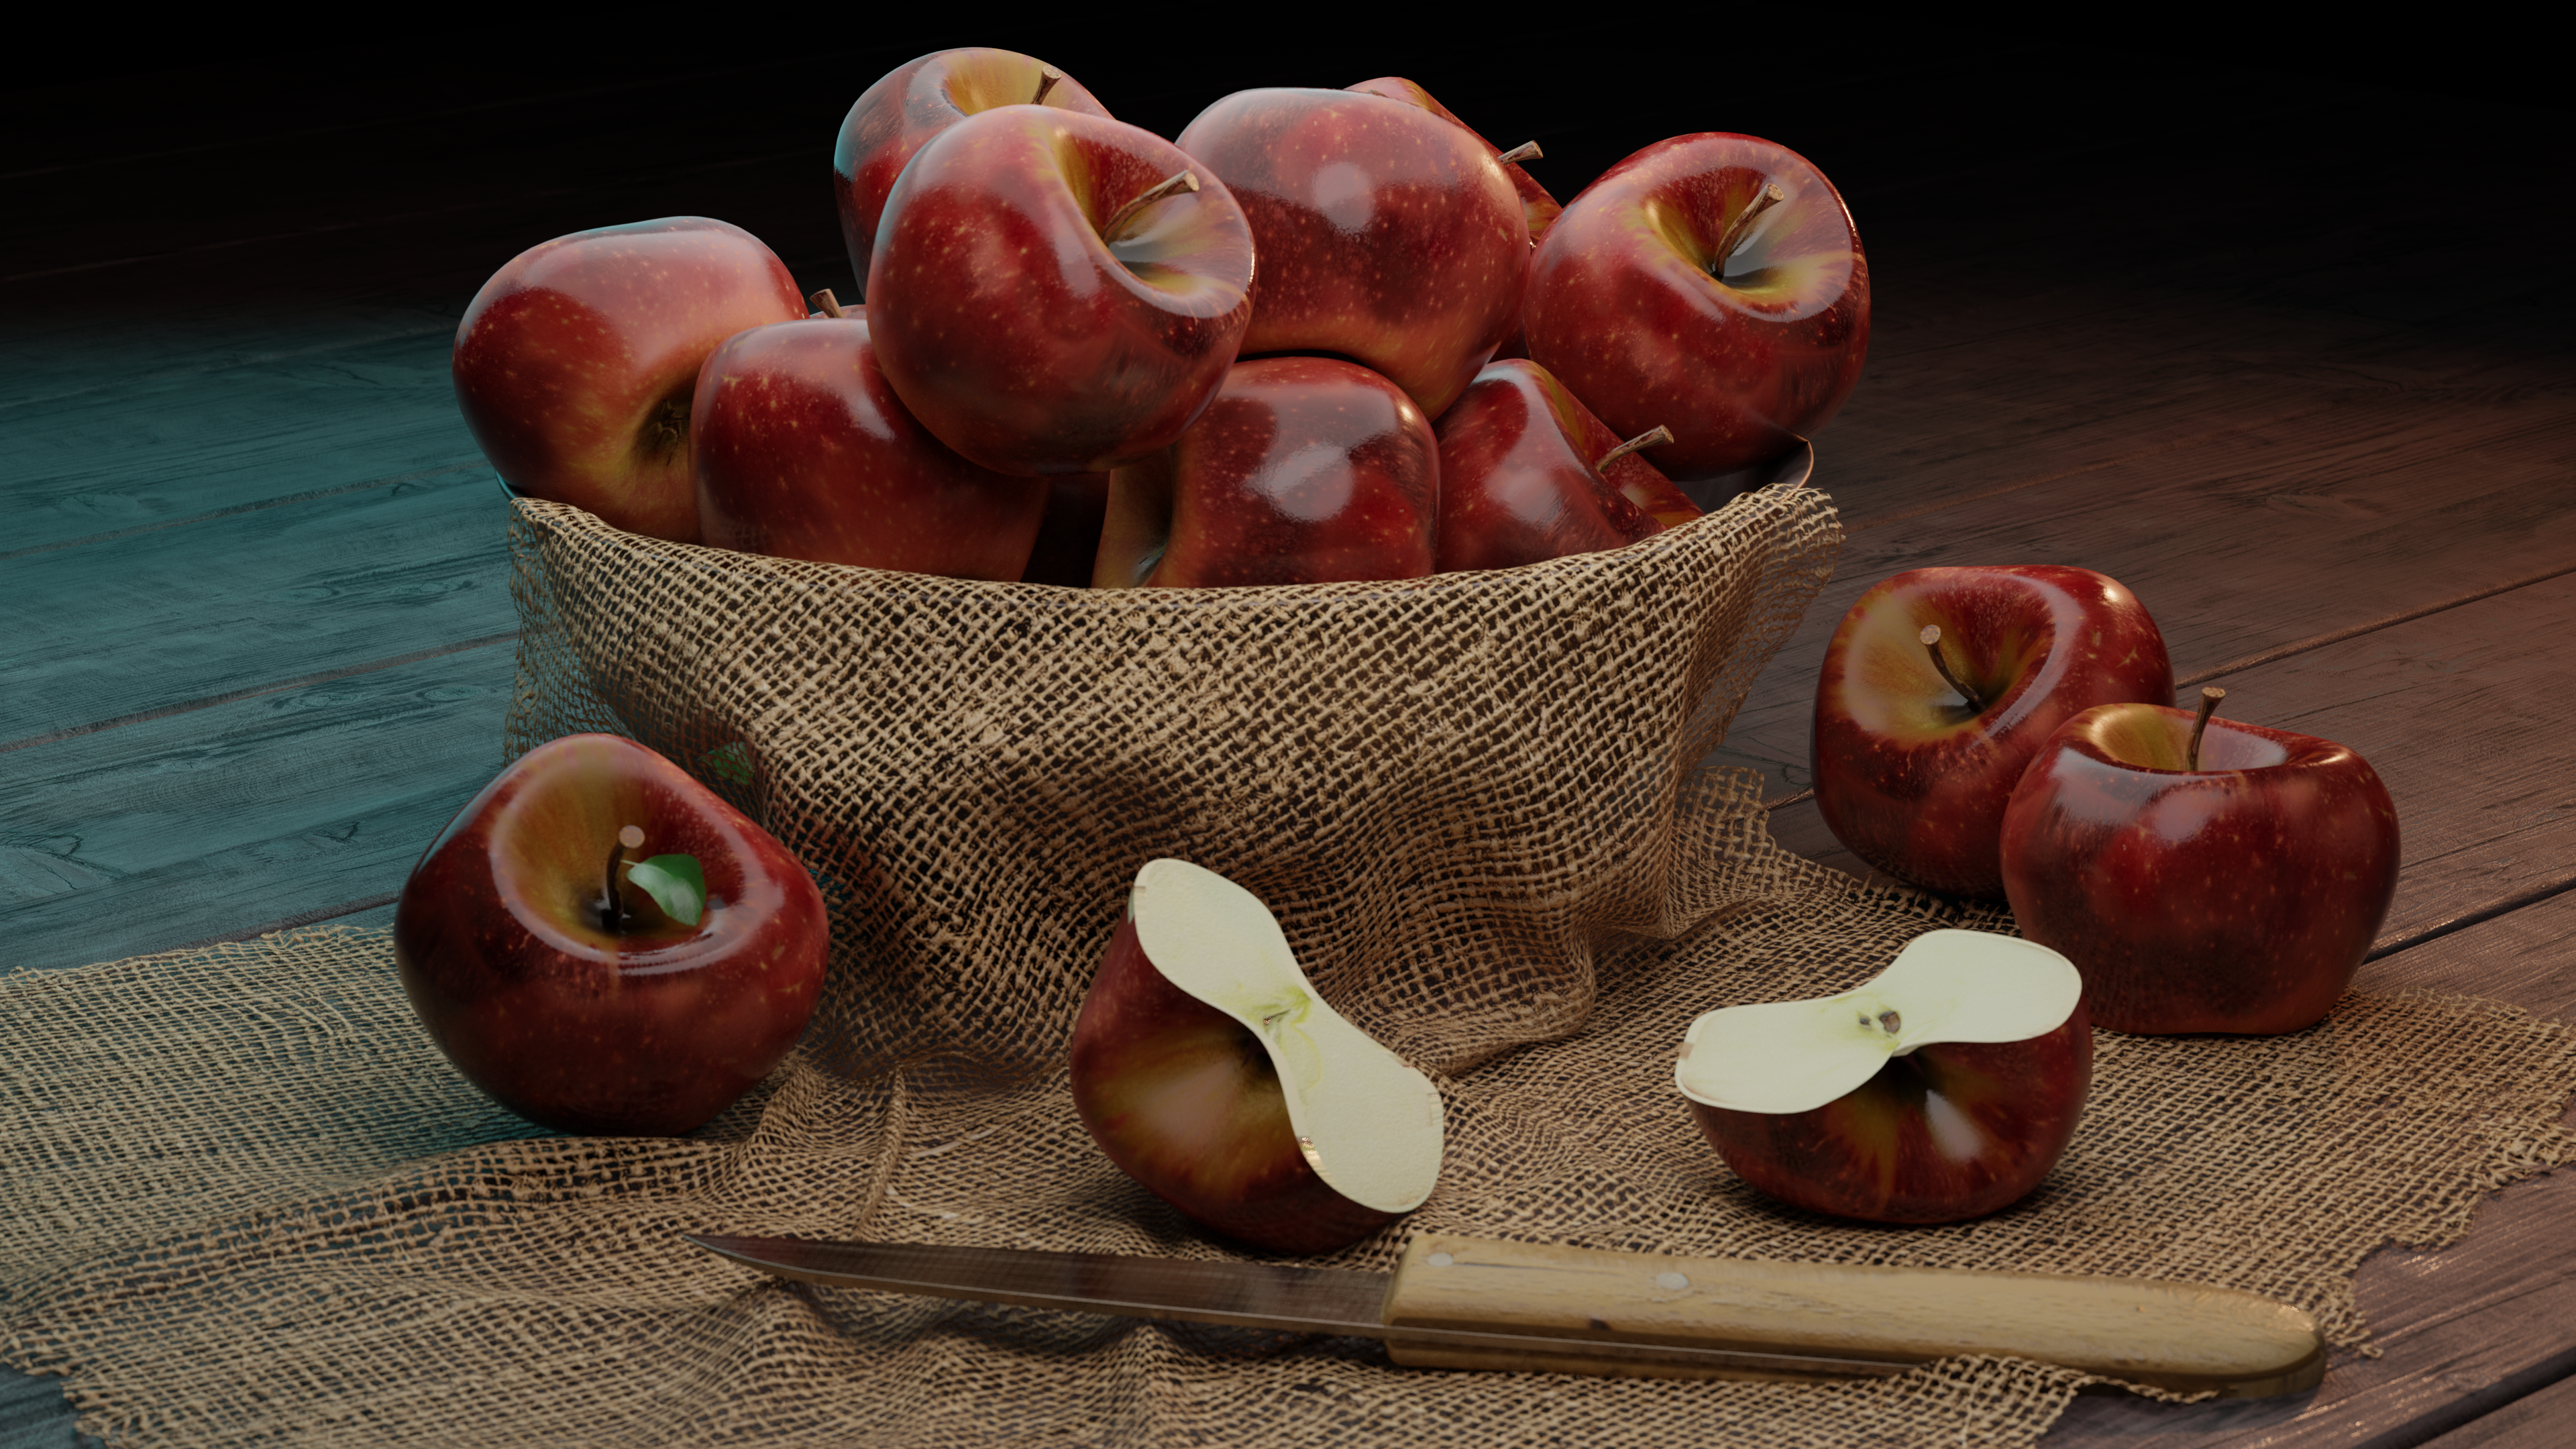 Realistic apple with cotton fabric preview image 1